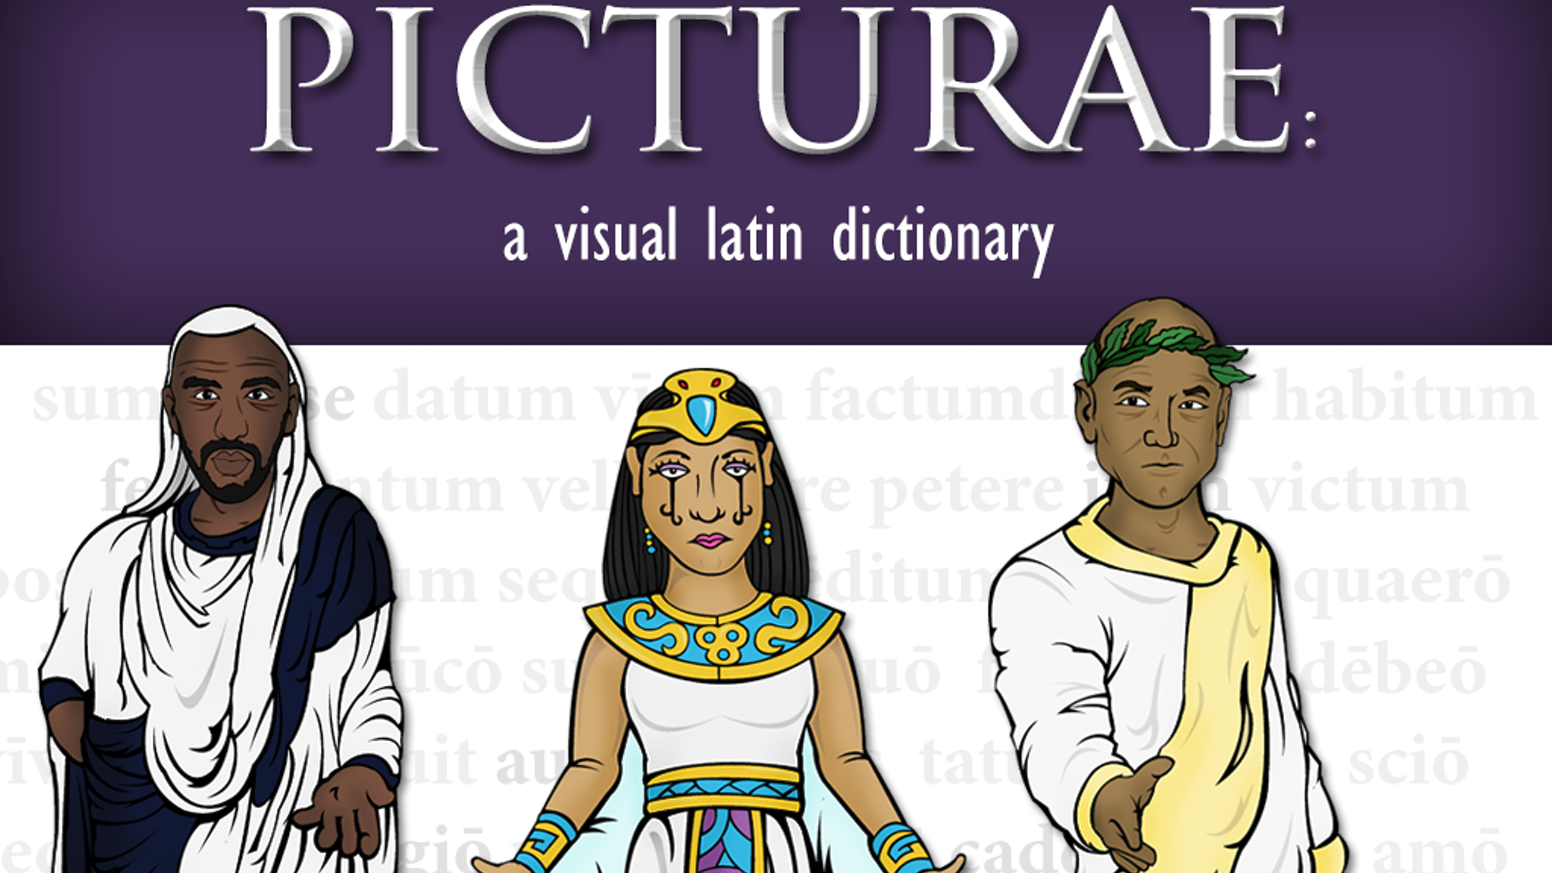 The Picturae project seeks to create a visual dictionary of Latin words that contextualizes vocabulary for beginning Latin students.